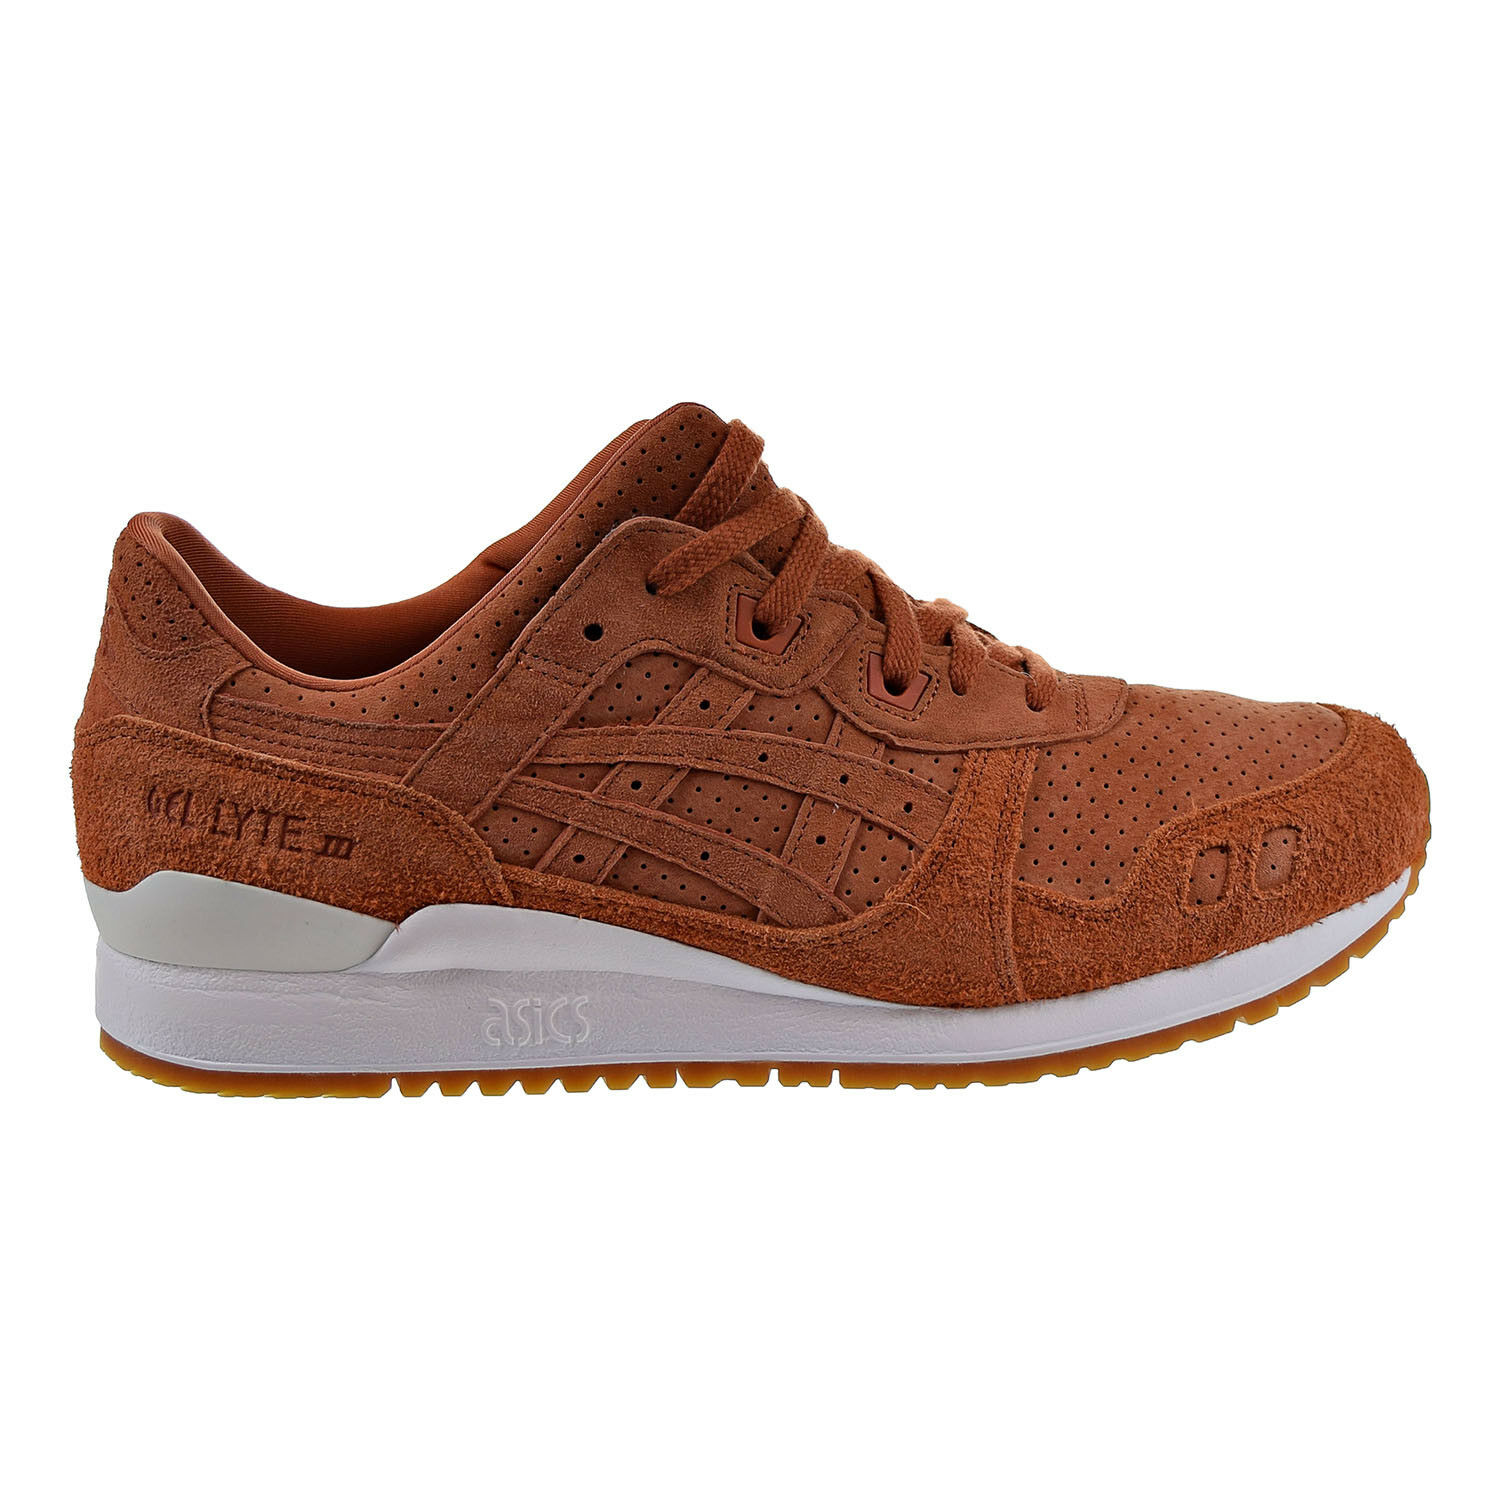 Asics Tiger Gel-Lyte III Men's Shoes Spice Route / Spice Route HL7X3-3030